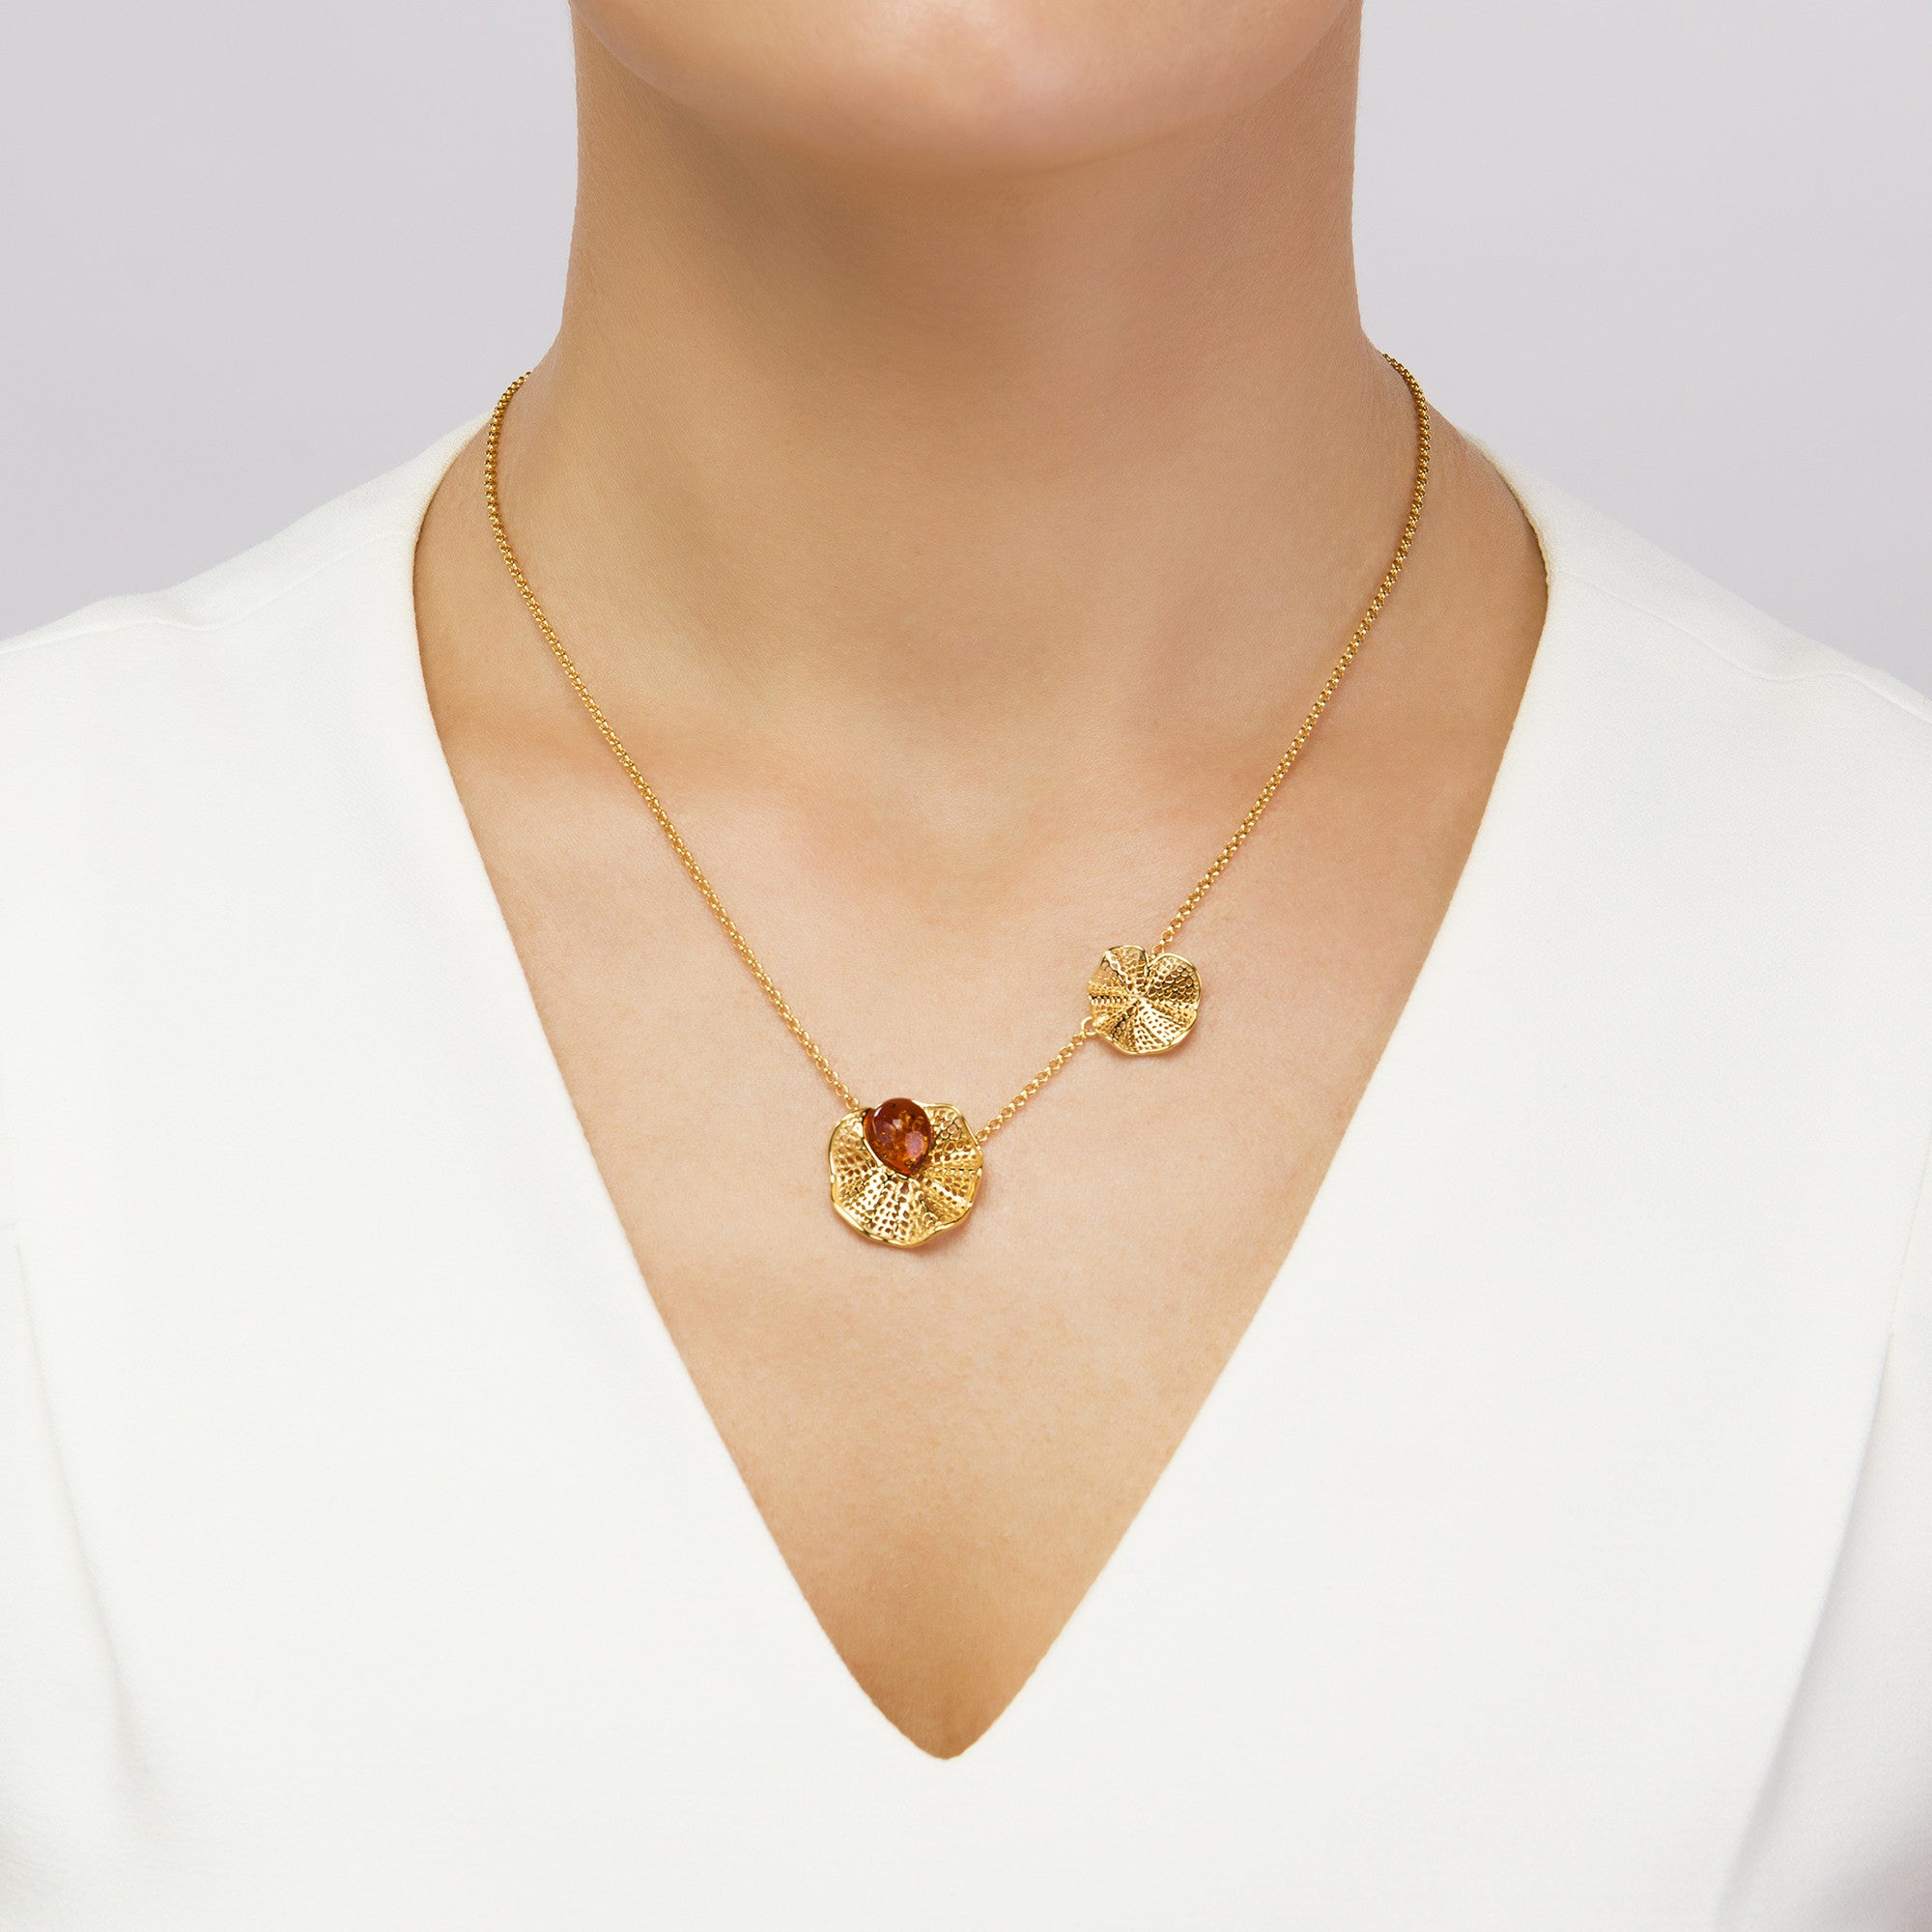 Morning Glory Cognac Necklace